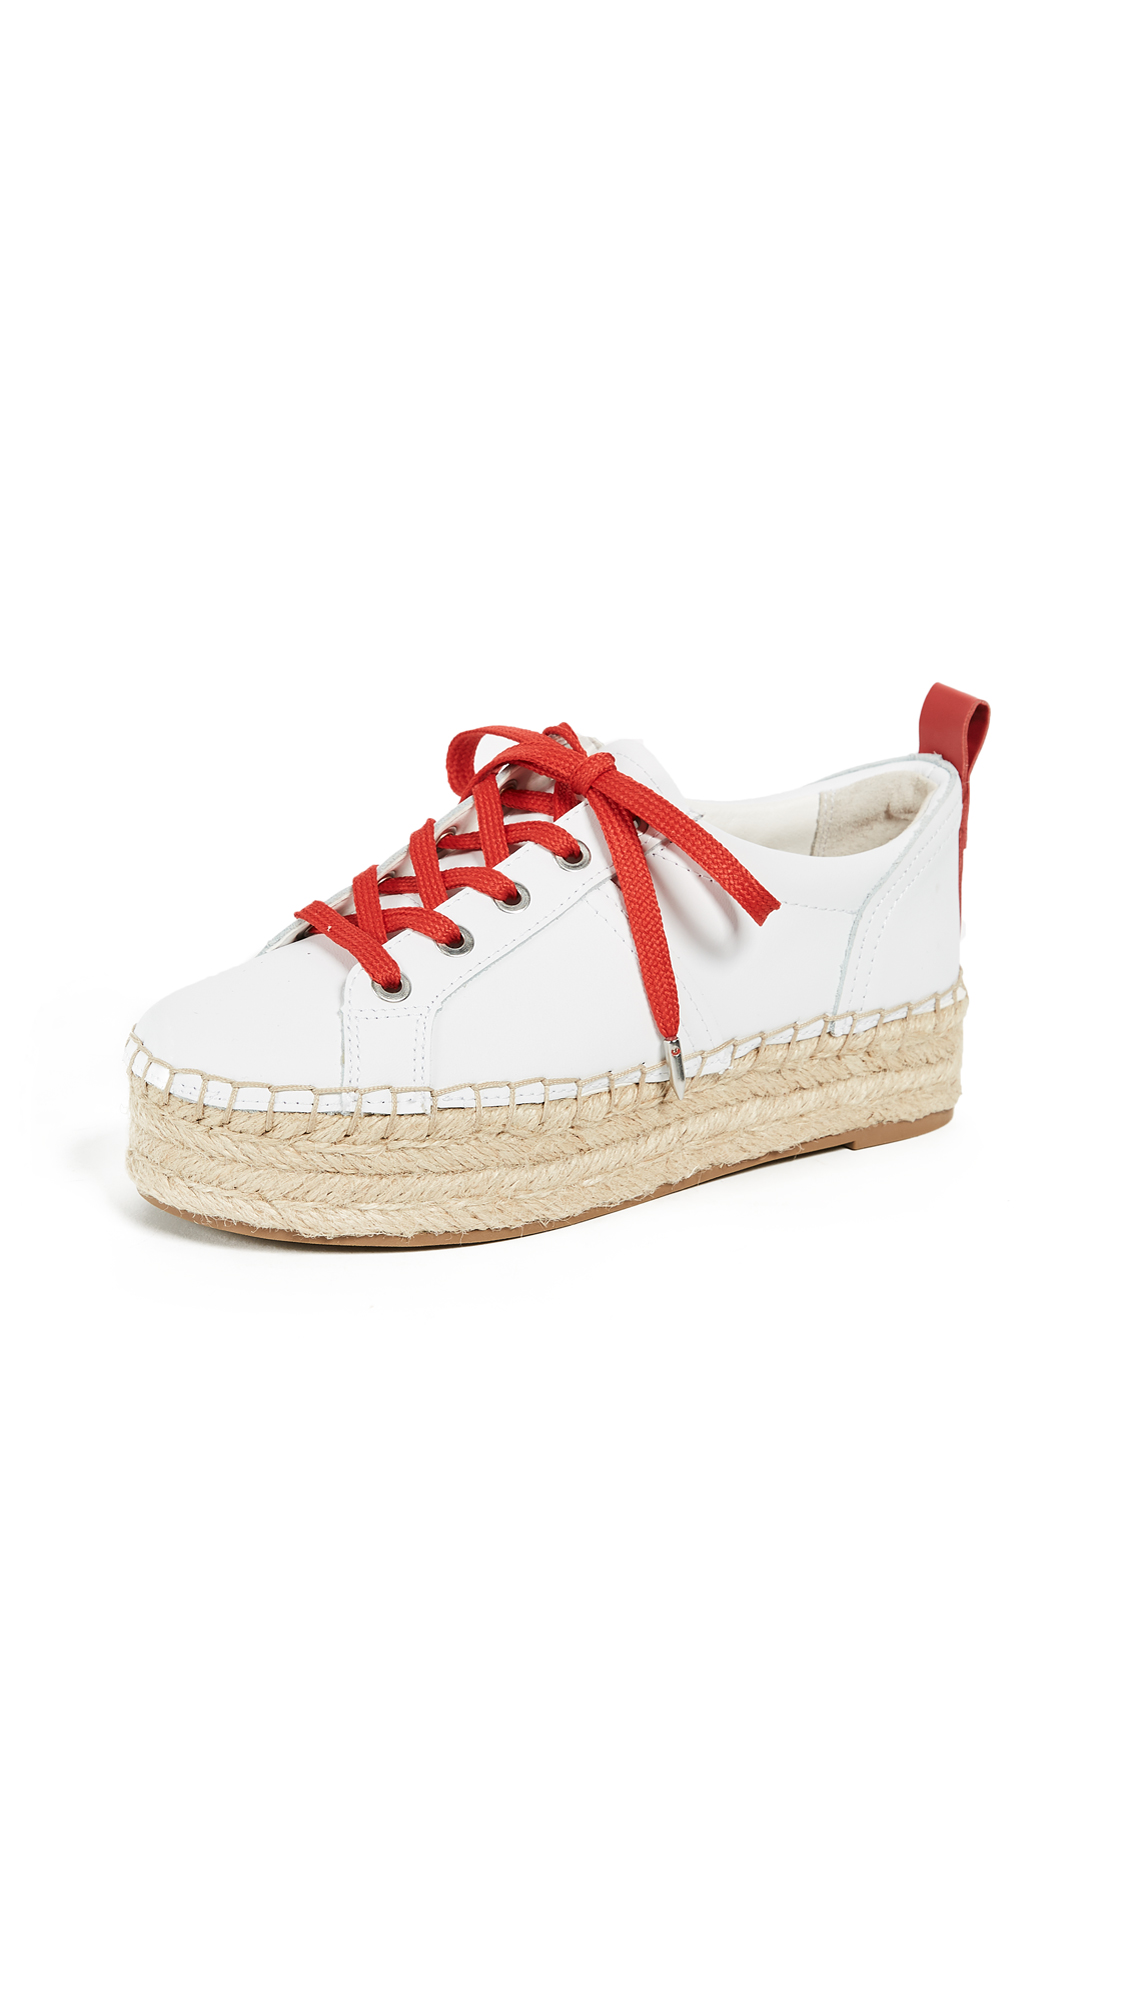 Sam Edelman Carleigh Platform Espadrille Sneakers - Super White/Candy Red